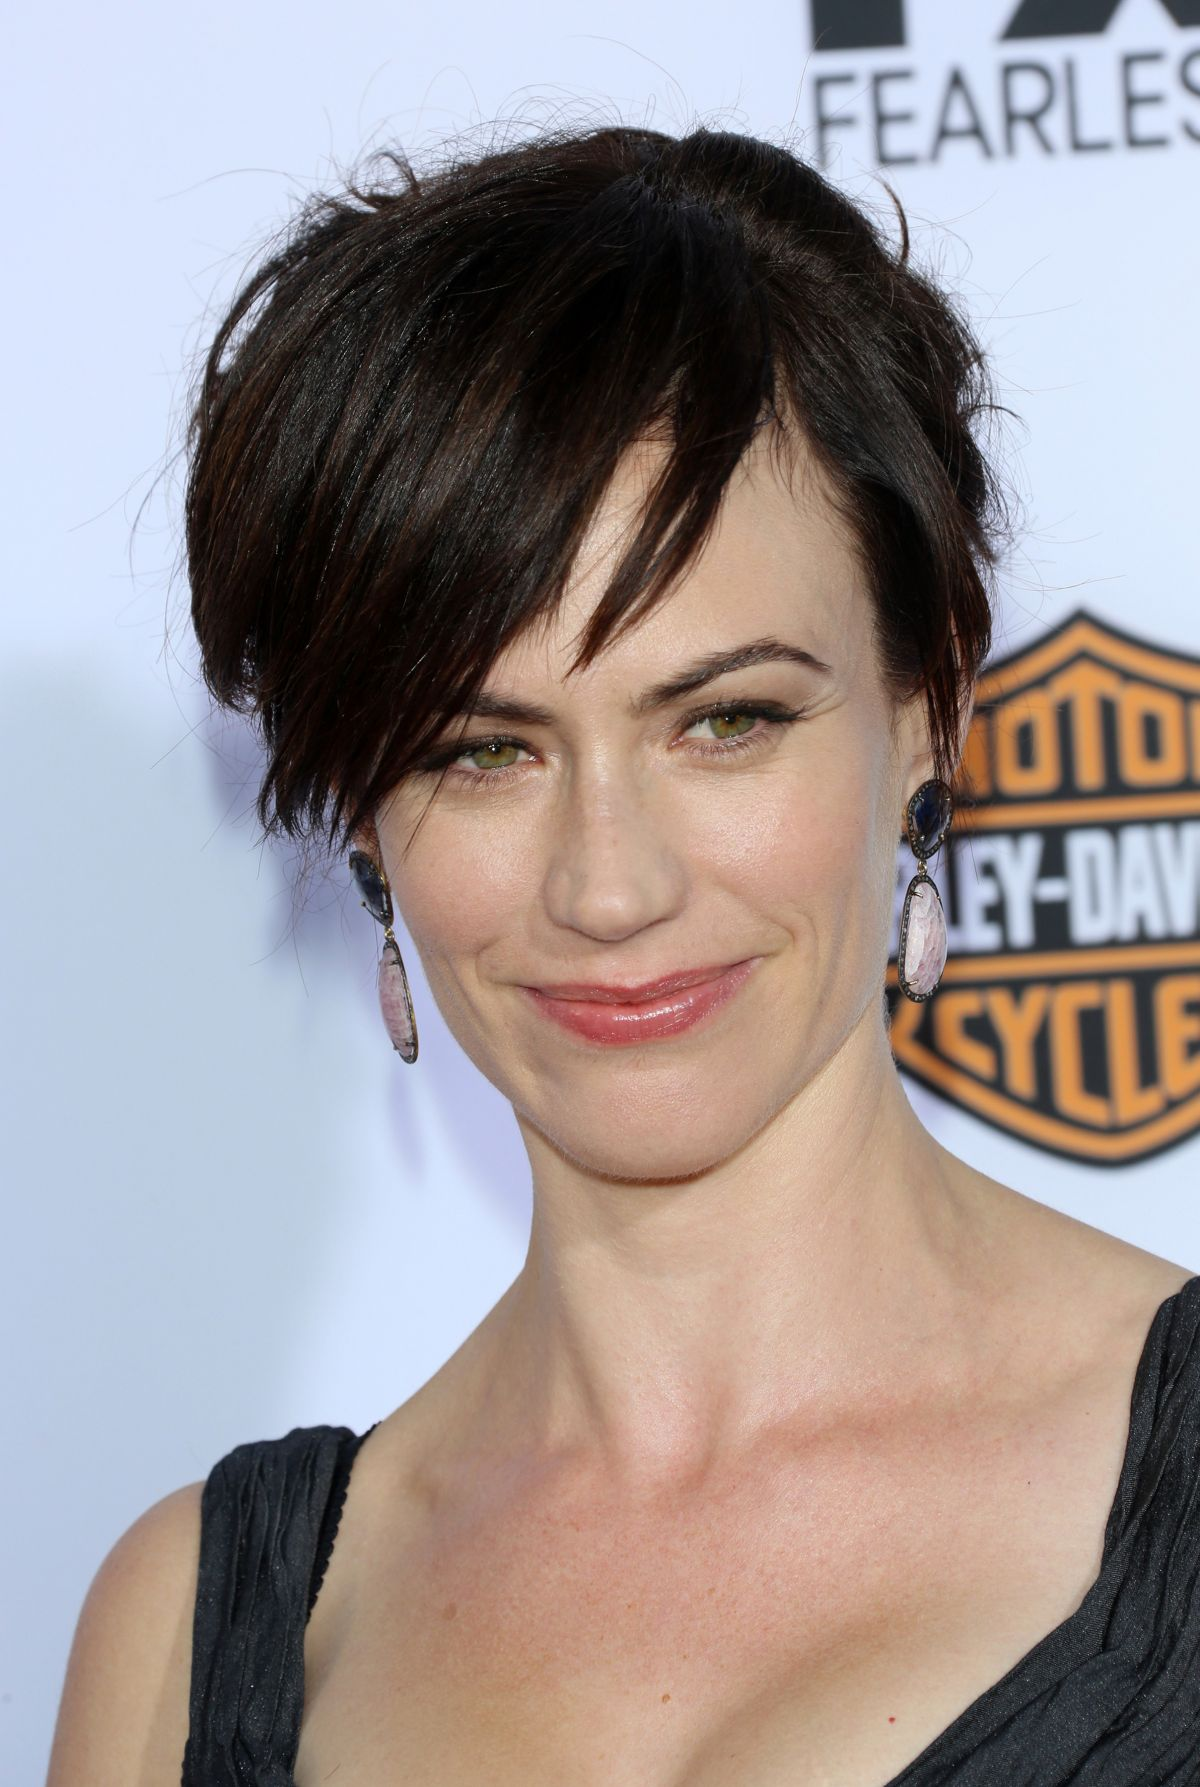 maggie-siff-at-sons-of-anarchy-season-6-premiere-in-hollywood 6 jpgMaggie Siff Sons Of Anarchy Season 6